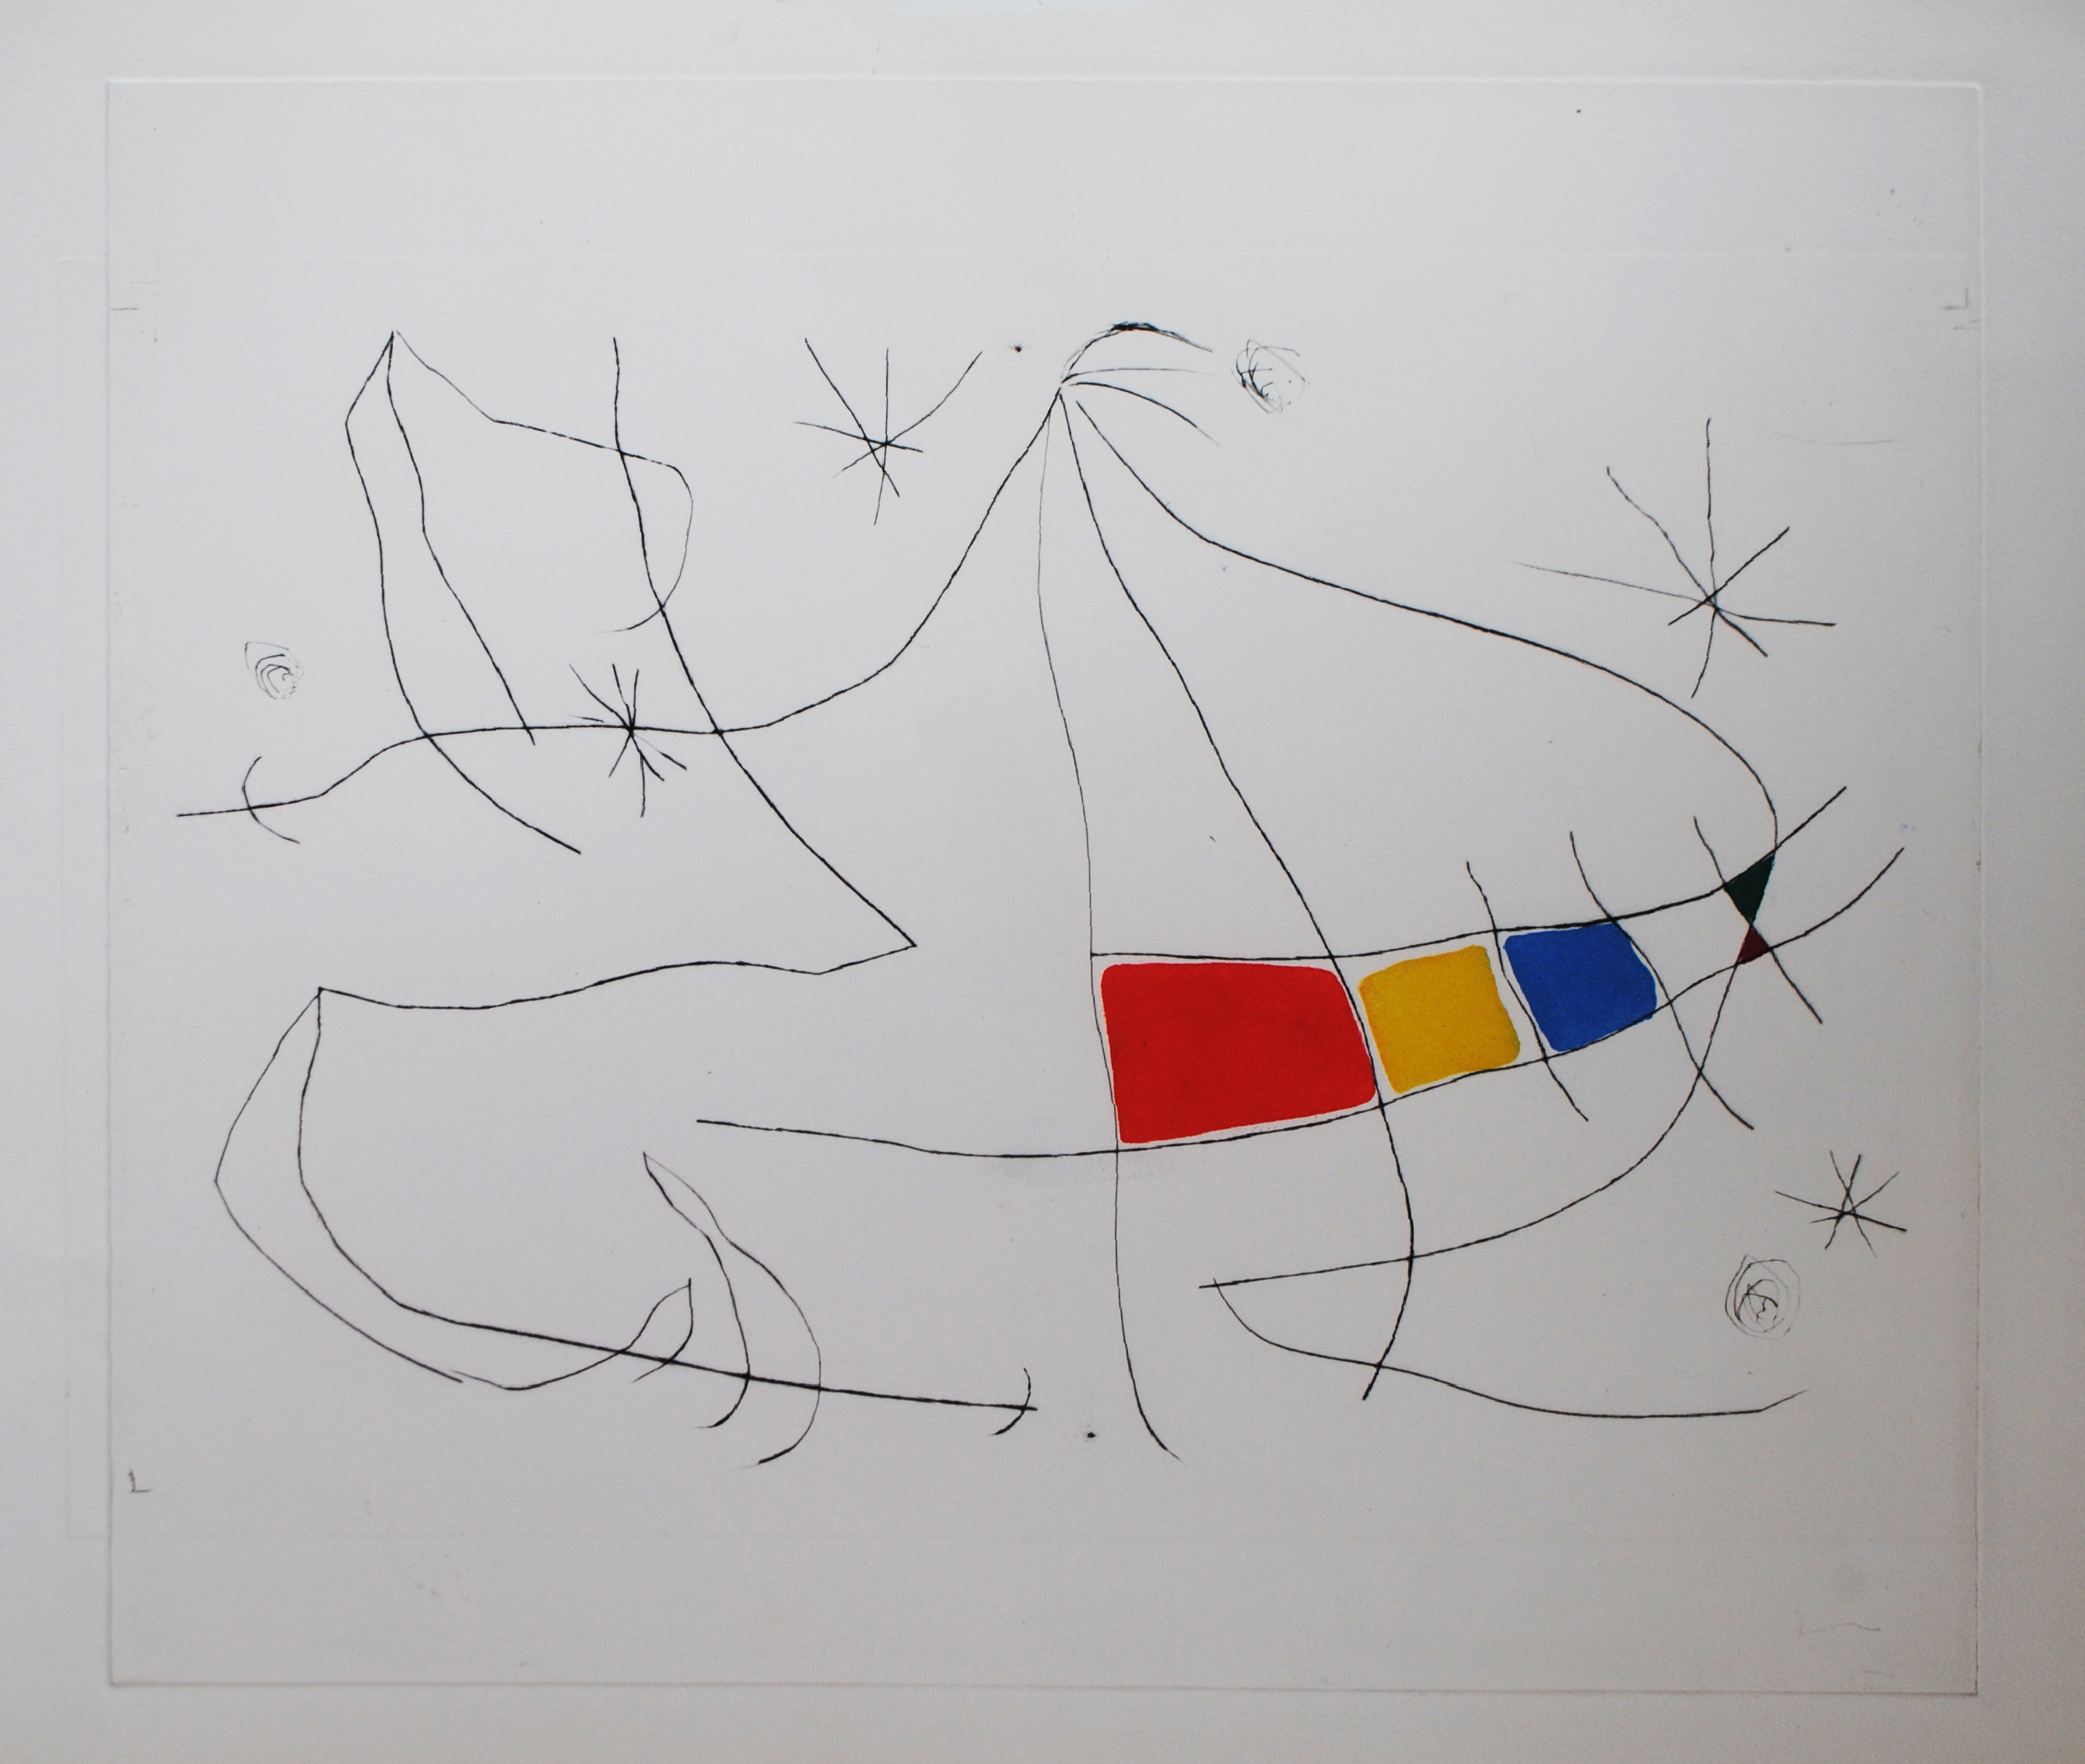 Miro, L'Issue Dérobée, D691, drypoint and aquatint, trial proof